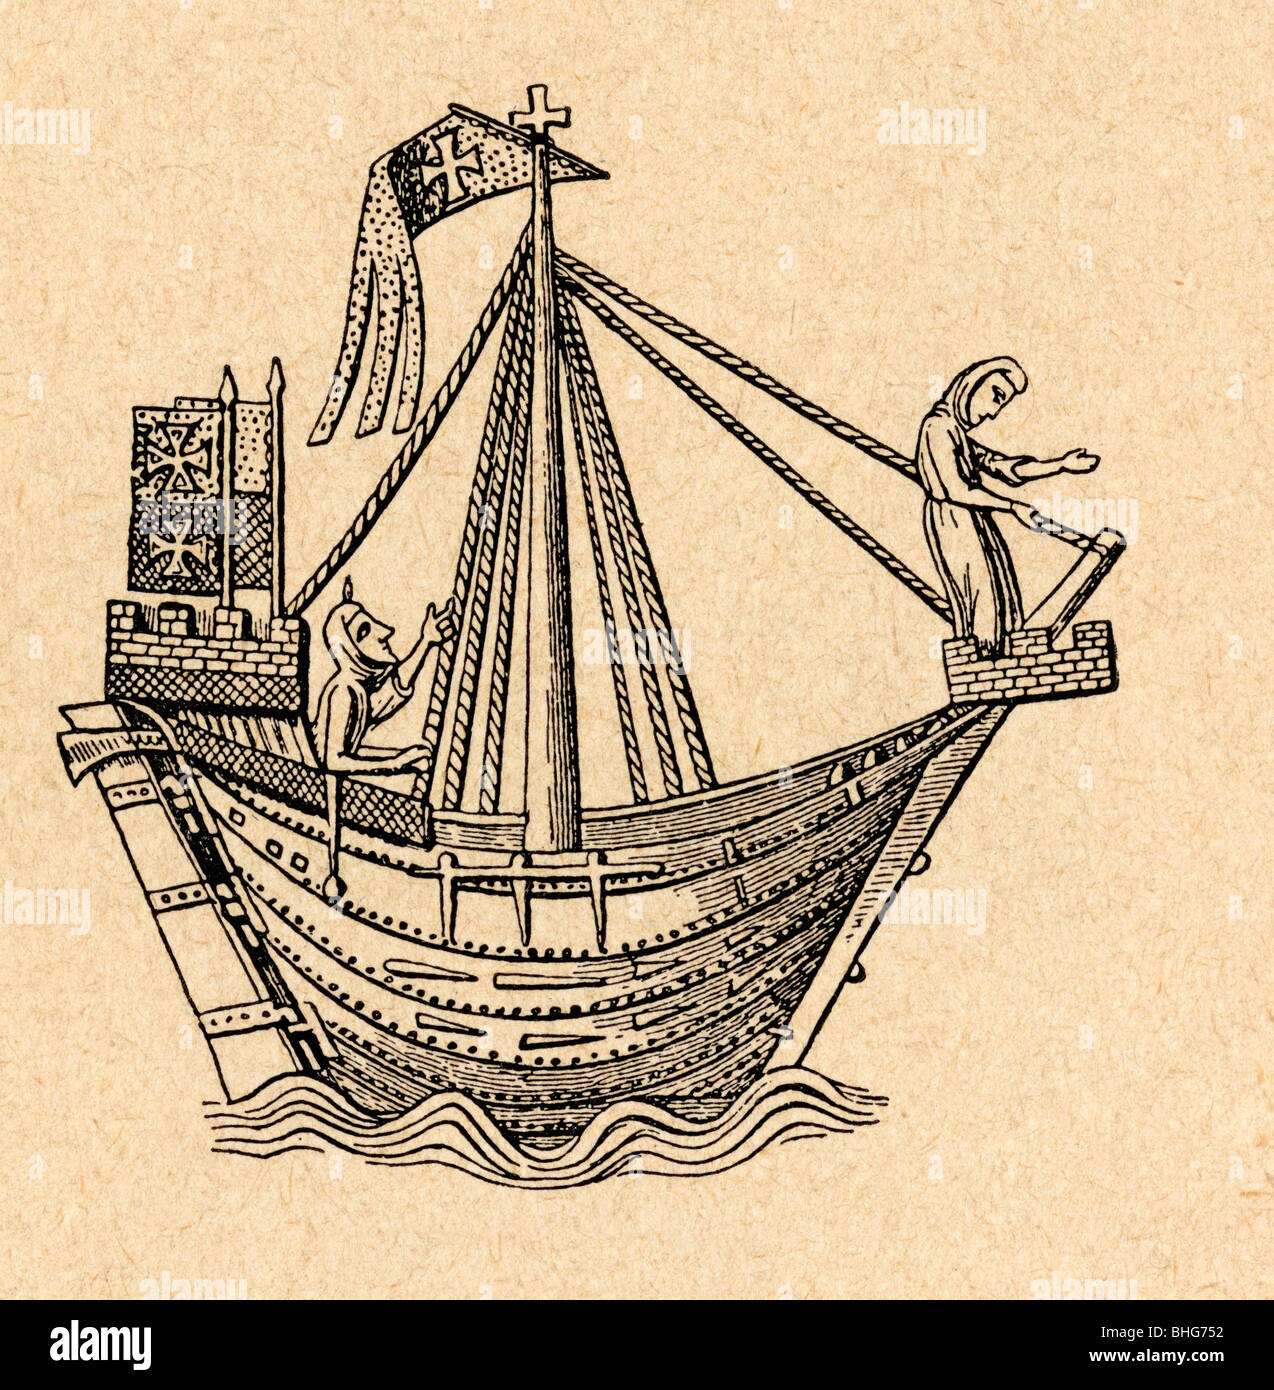 A 14th century sailing ship of the Hanseatic League. - Stock Image